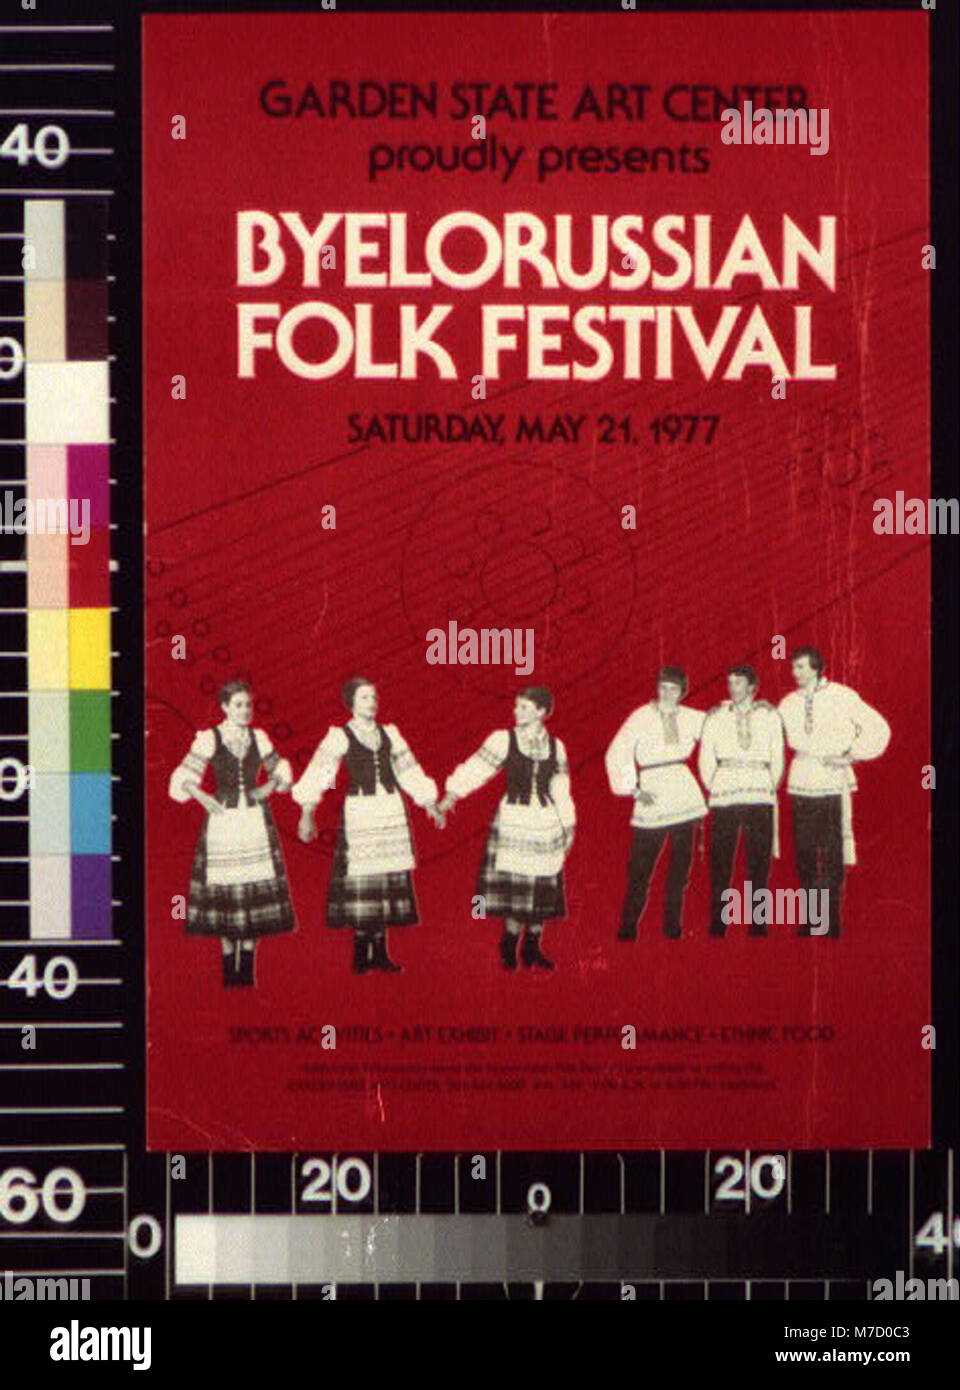 Garden State Art Center Proudly Presents Byelorussian Folk Festival,  Saturday, May 21, 1977 LCCN2015648264